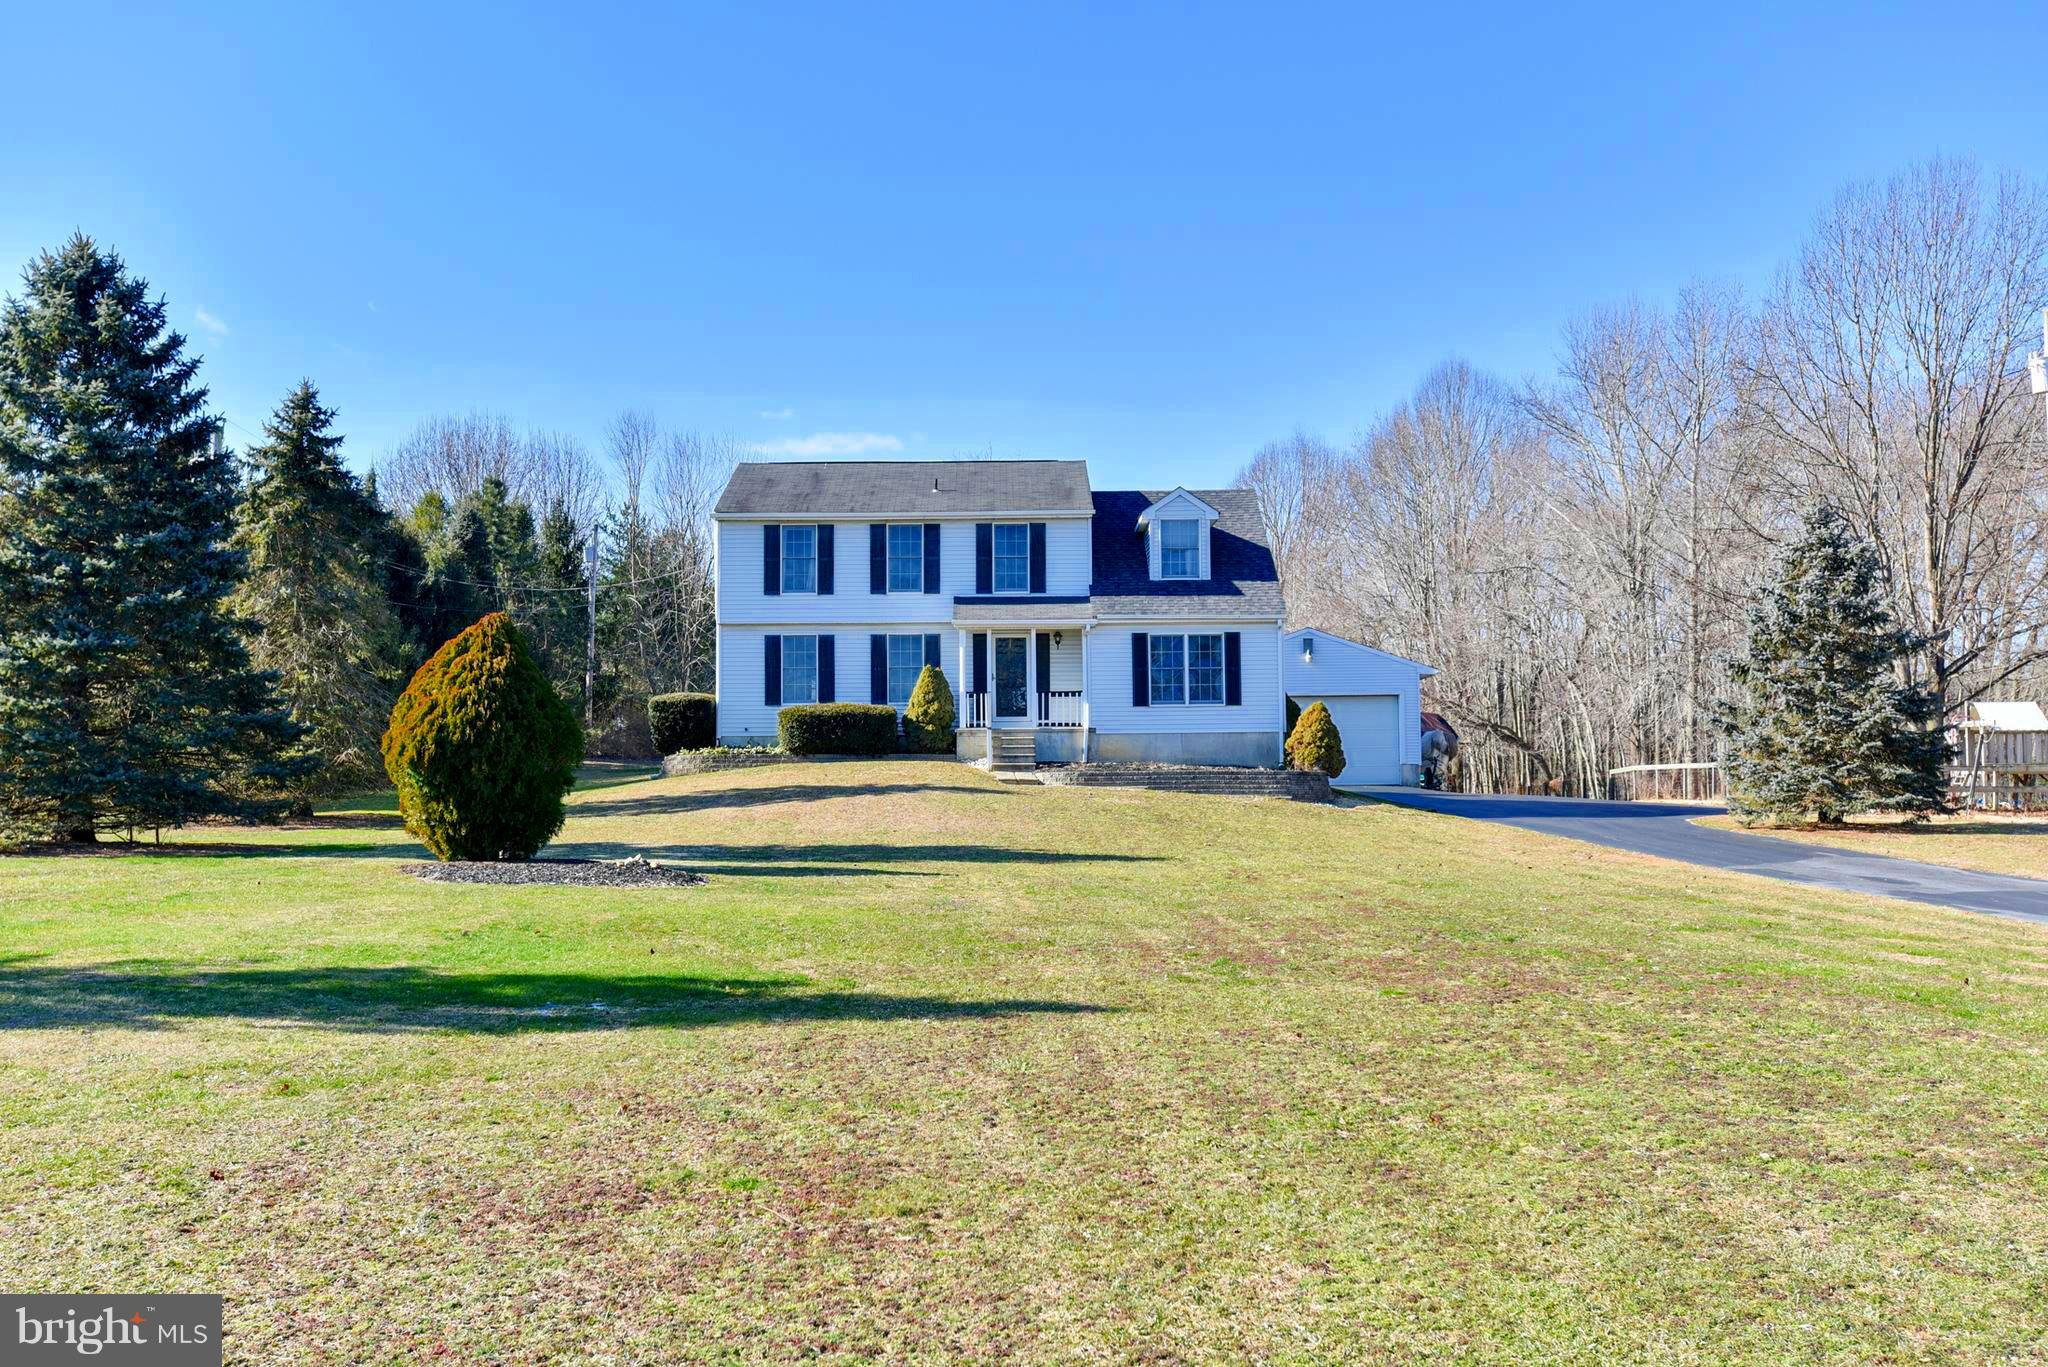 320 RICHWOOD ROAD, MULLICA HILL, NJ 08061